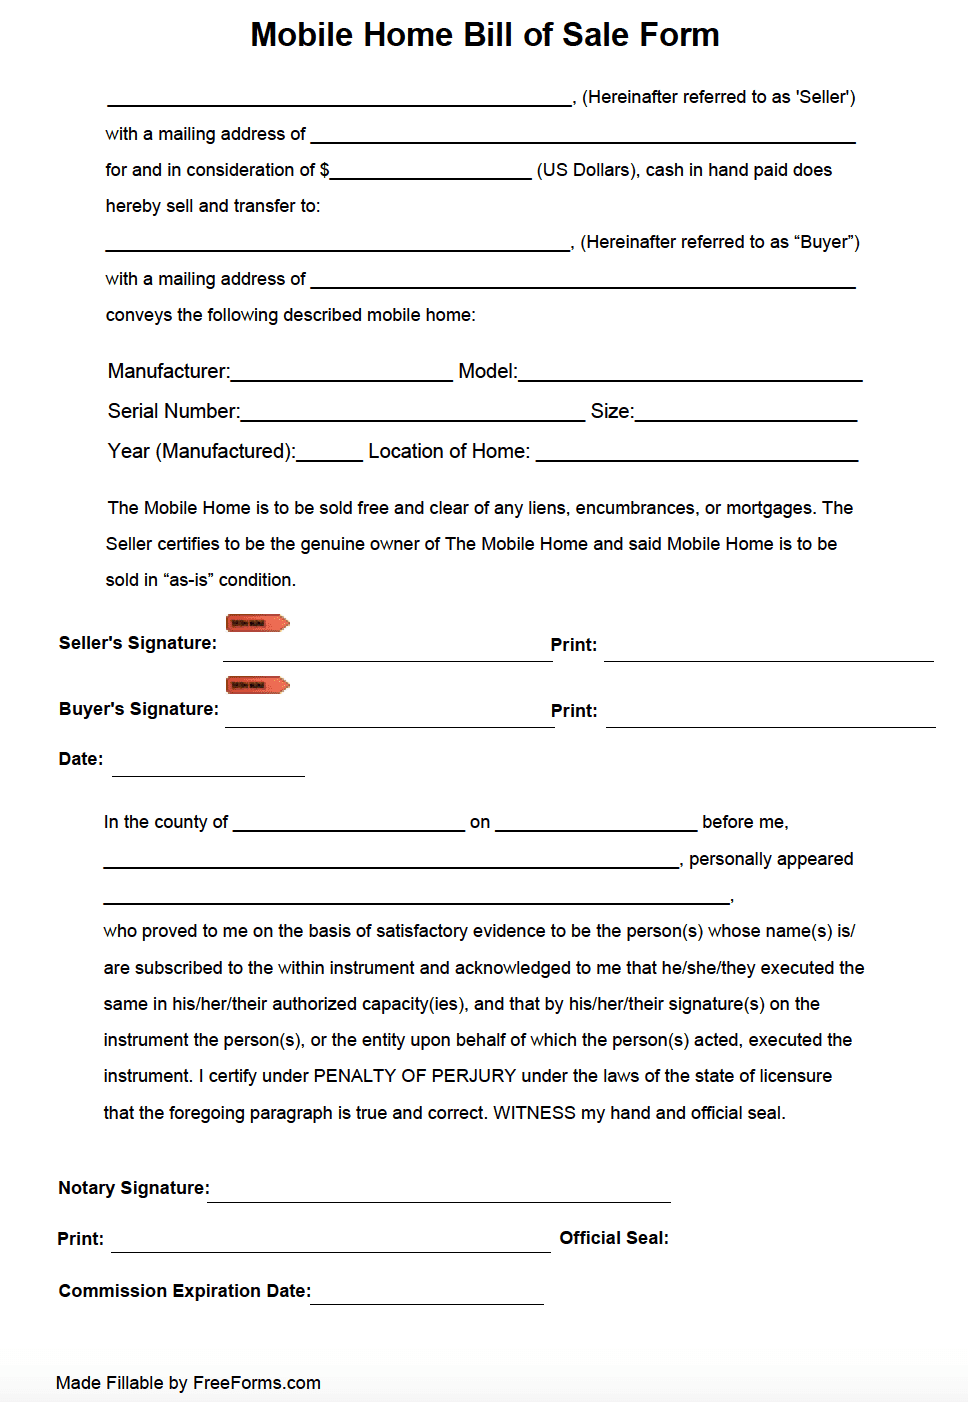 Free Mobile (Manufactured) Home Bill Of Sale Form   Pdf